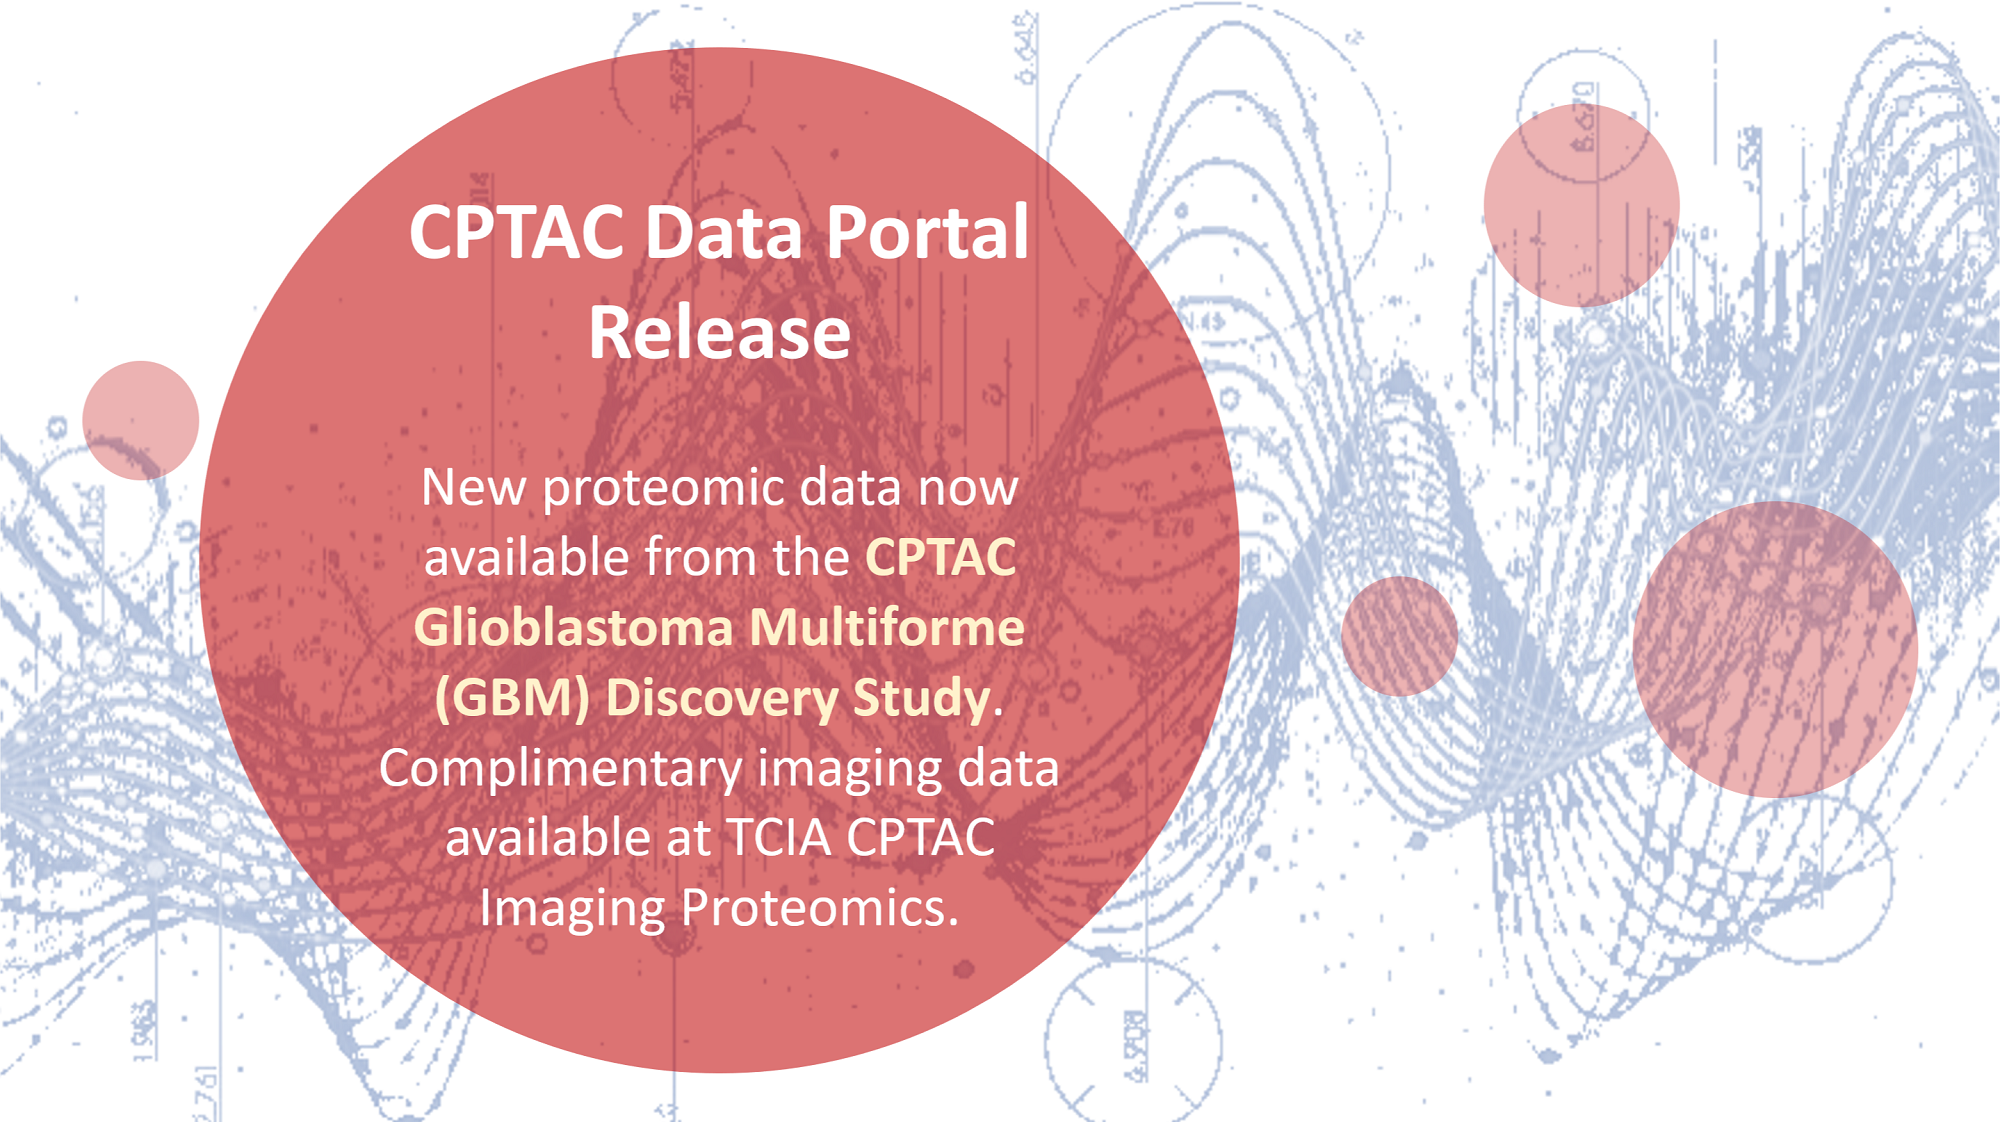 CPTAC Data Portal Announcement